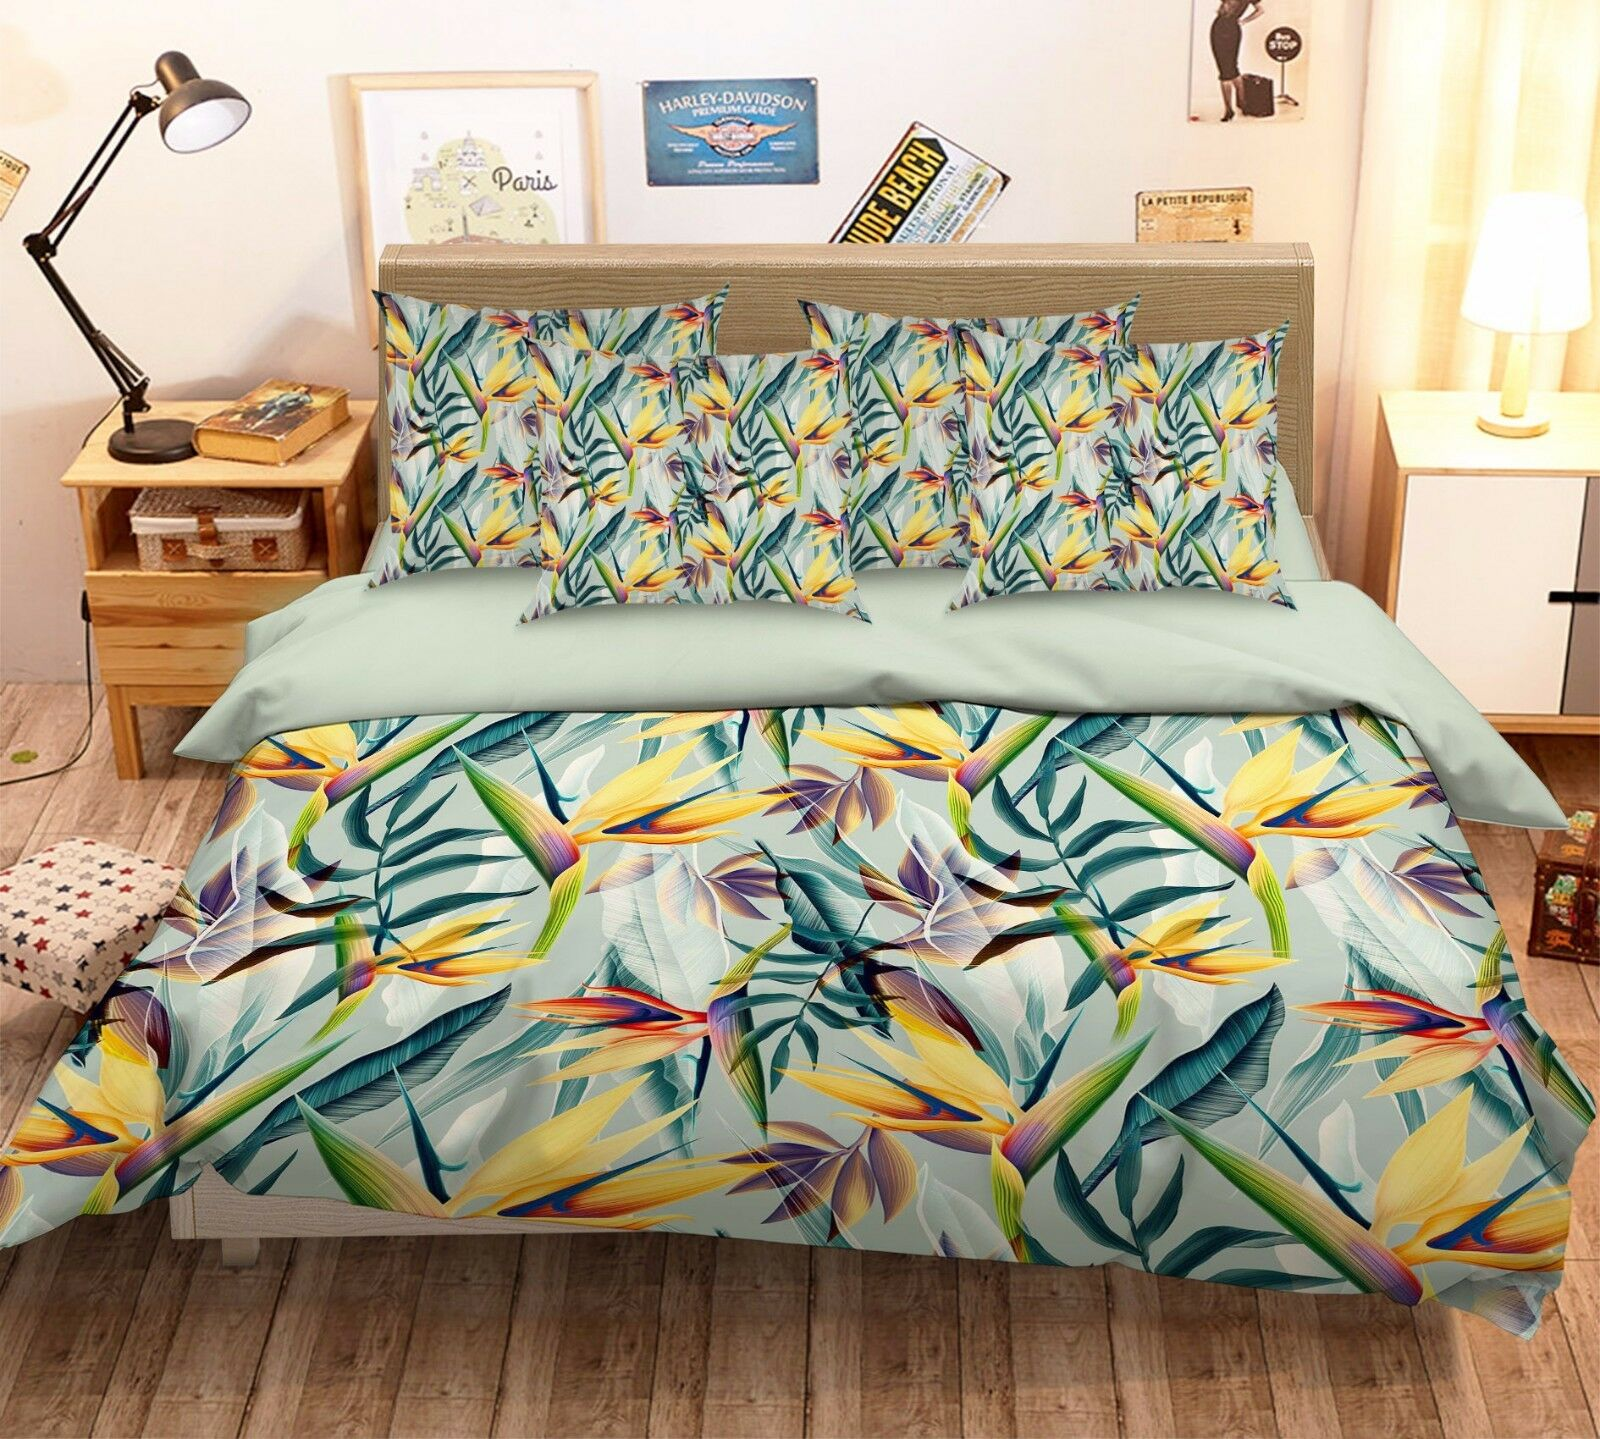 3D Strelitzi 214 Bed Pillowcases Quilt Duvet Cover Set Single Queen King Size AU